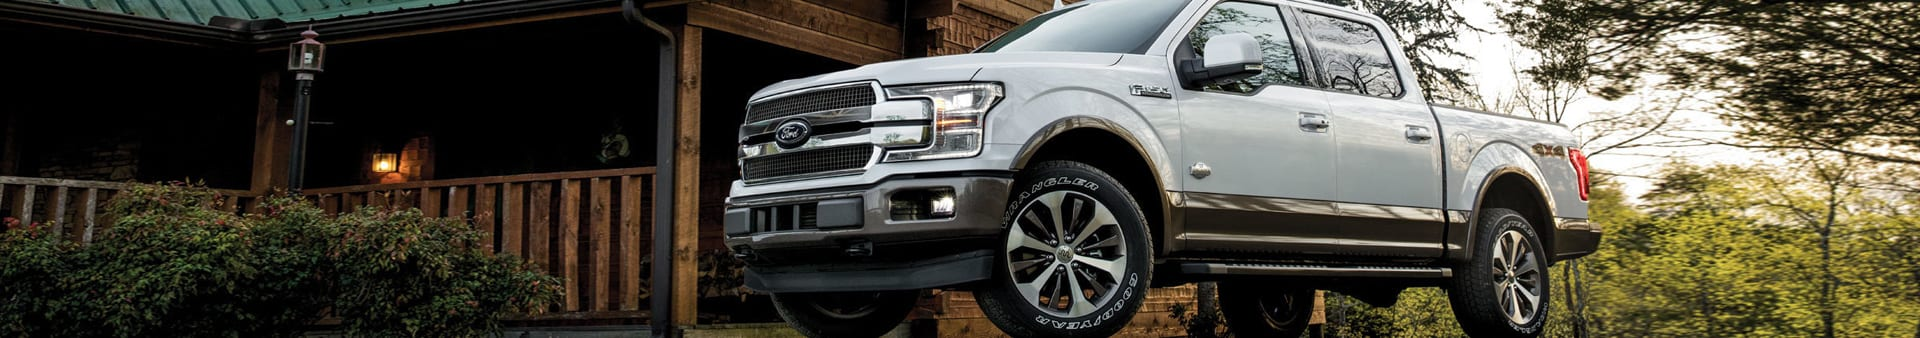 White Ford F150 Exterior outside of house